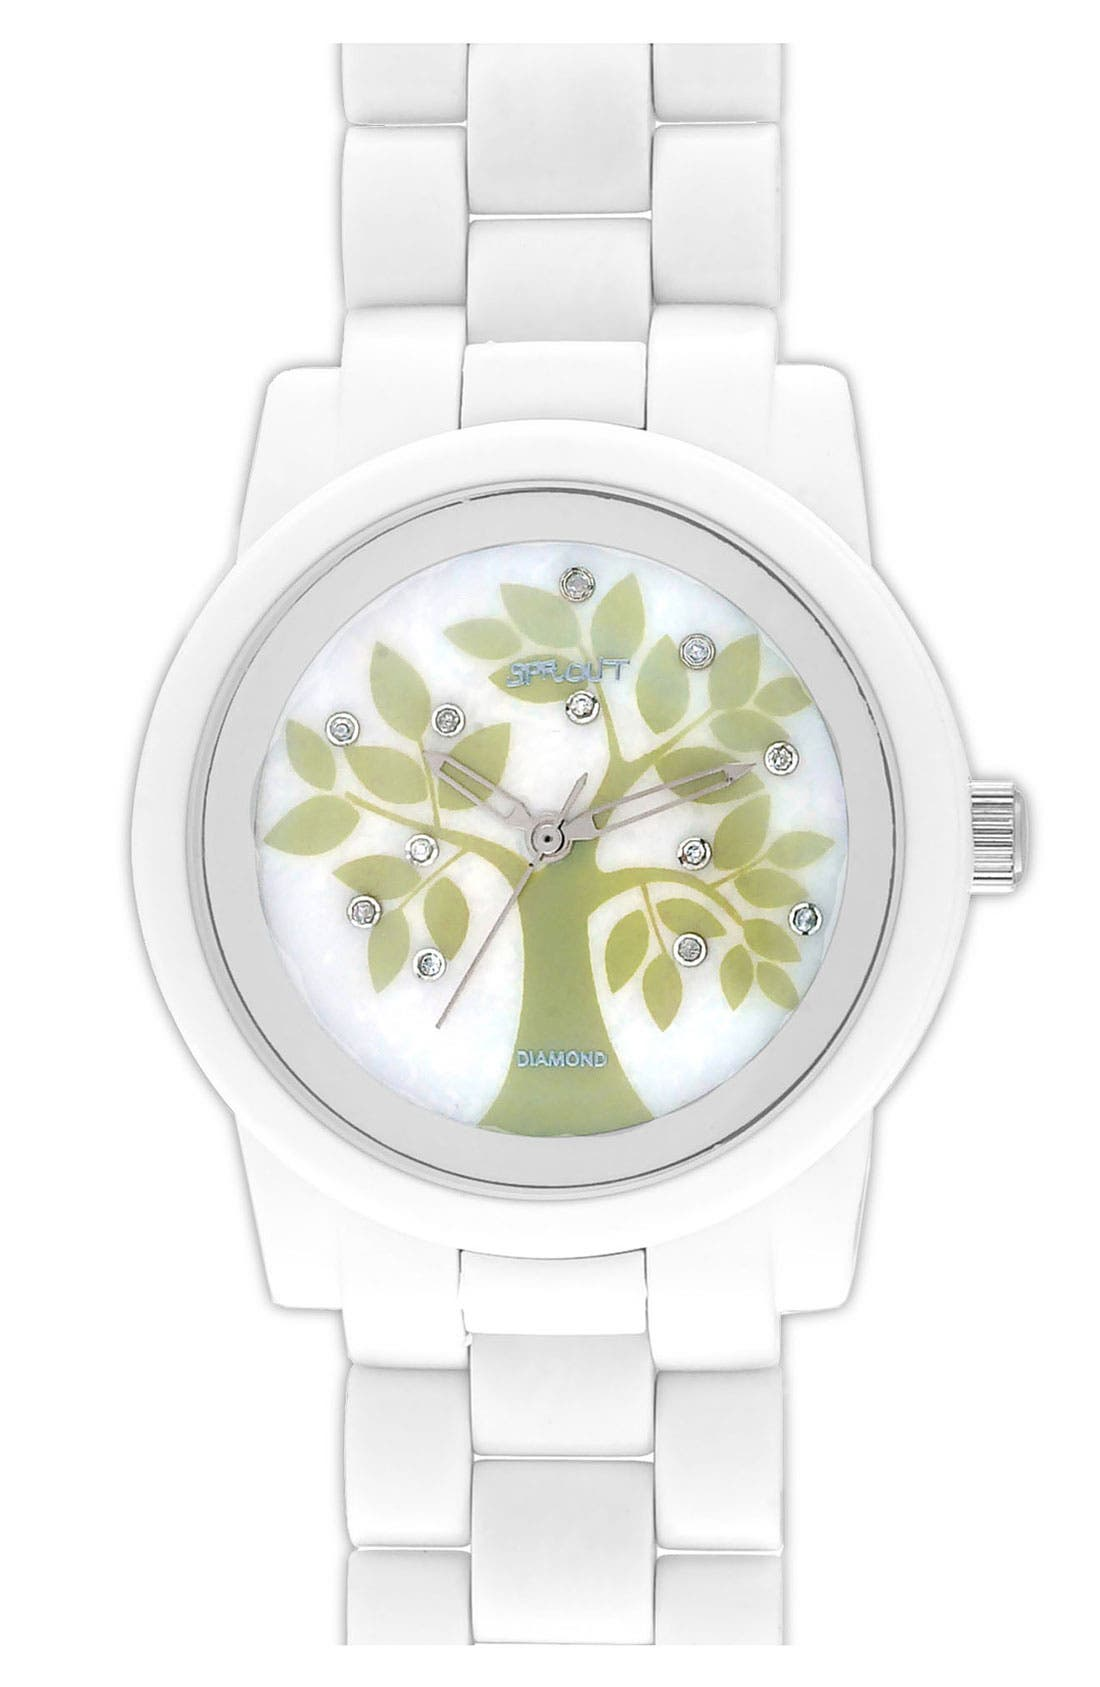 Main Image - SPROUT™ Watches Printed Diamond Dial Watch, 38mm